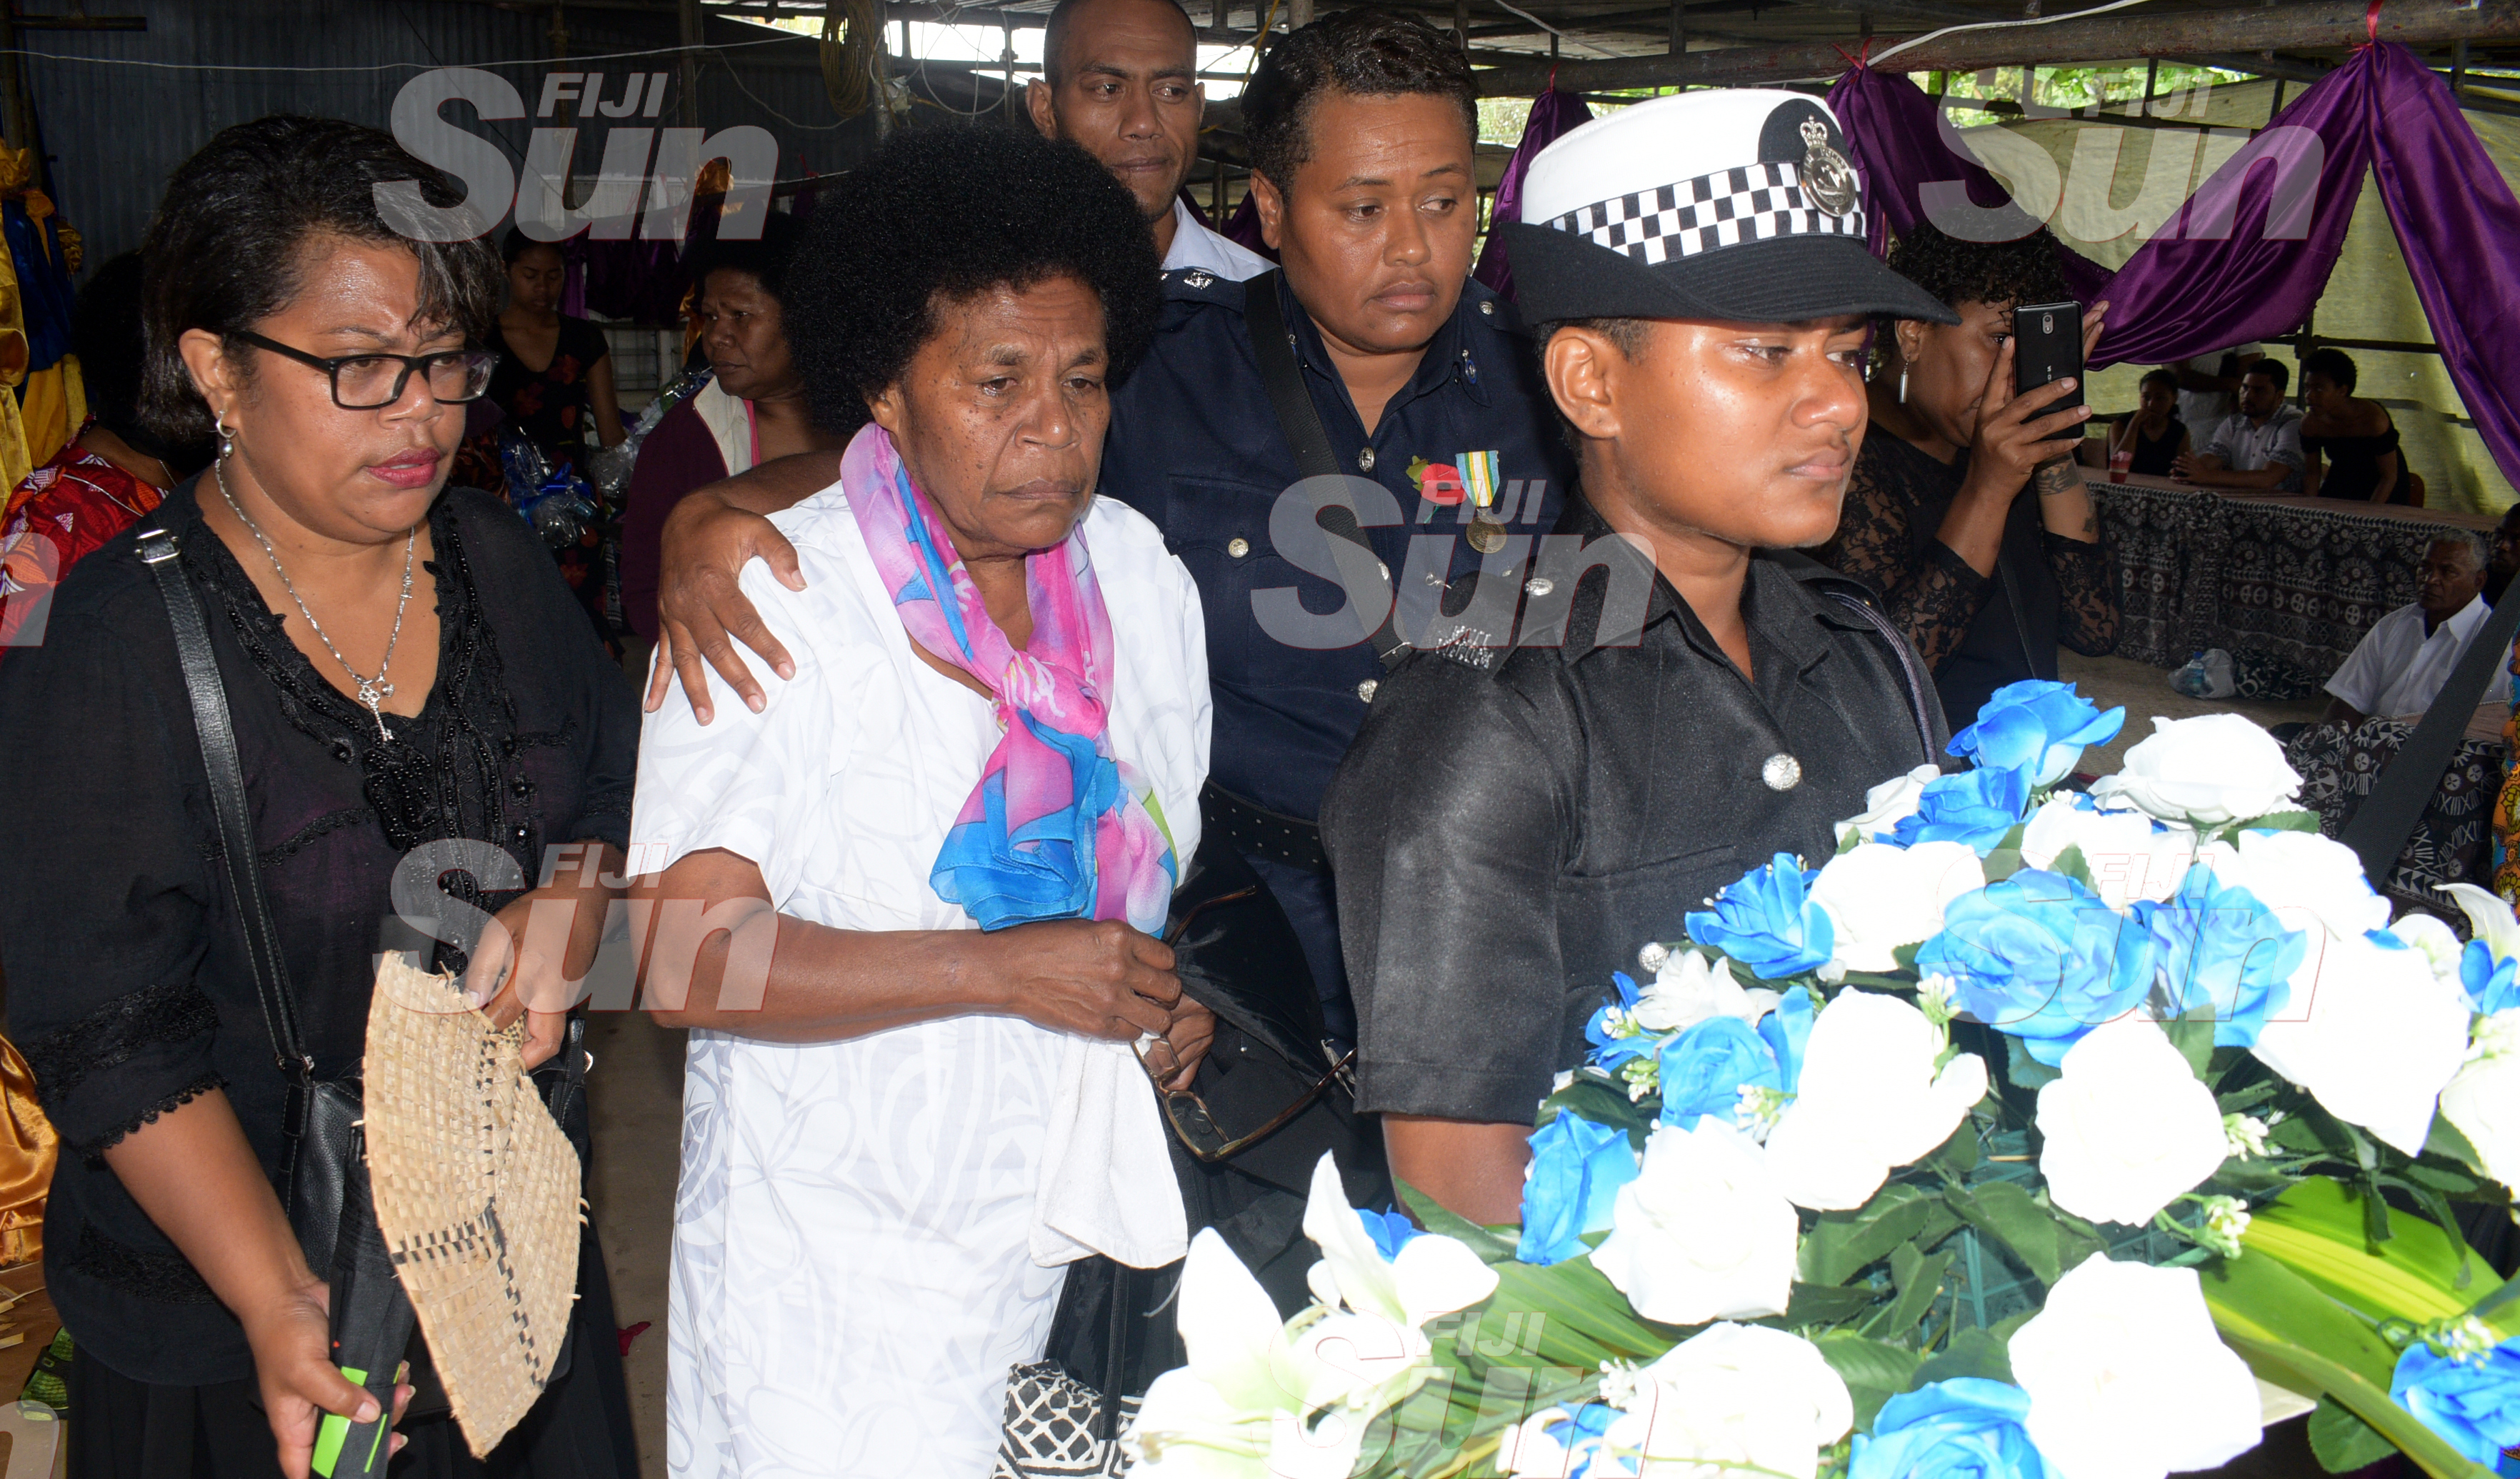 Late Constable Siuta Niumataiwalu's Mother, Makereta Koroi 66 (second from left) is consoled by Inspector Mariana Bulatolu during the funeral service at Evergreen AOG Church in Nasinu on October 26, 2019. Photo: Ronald Kumar.